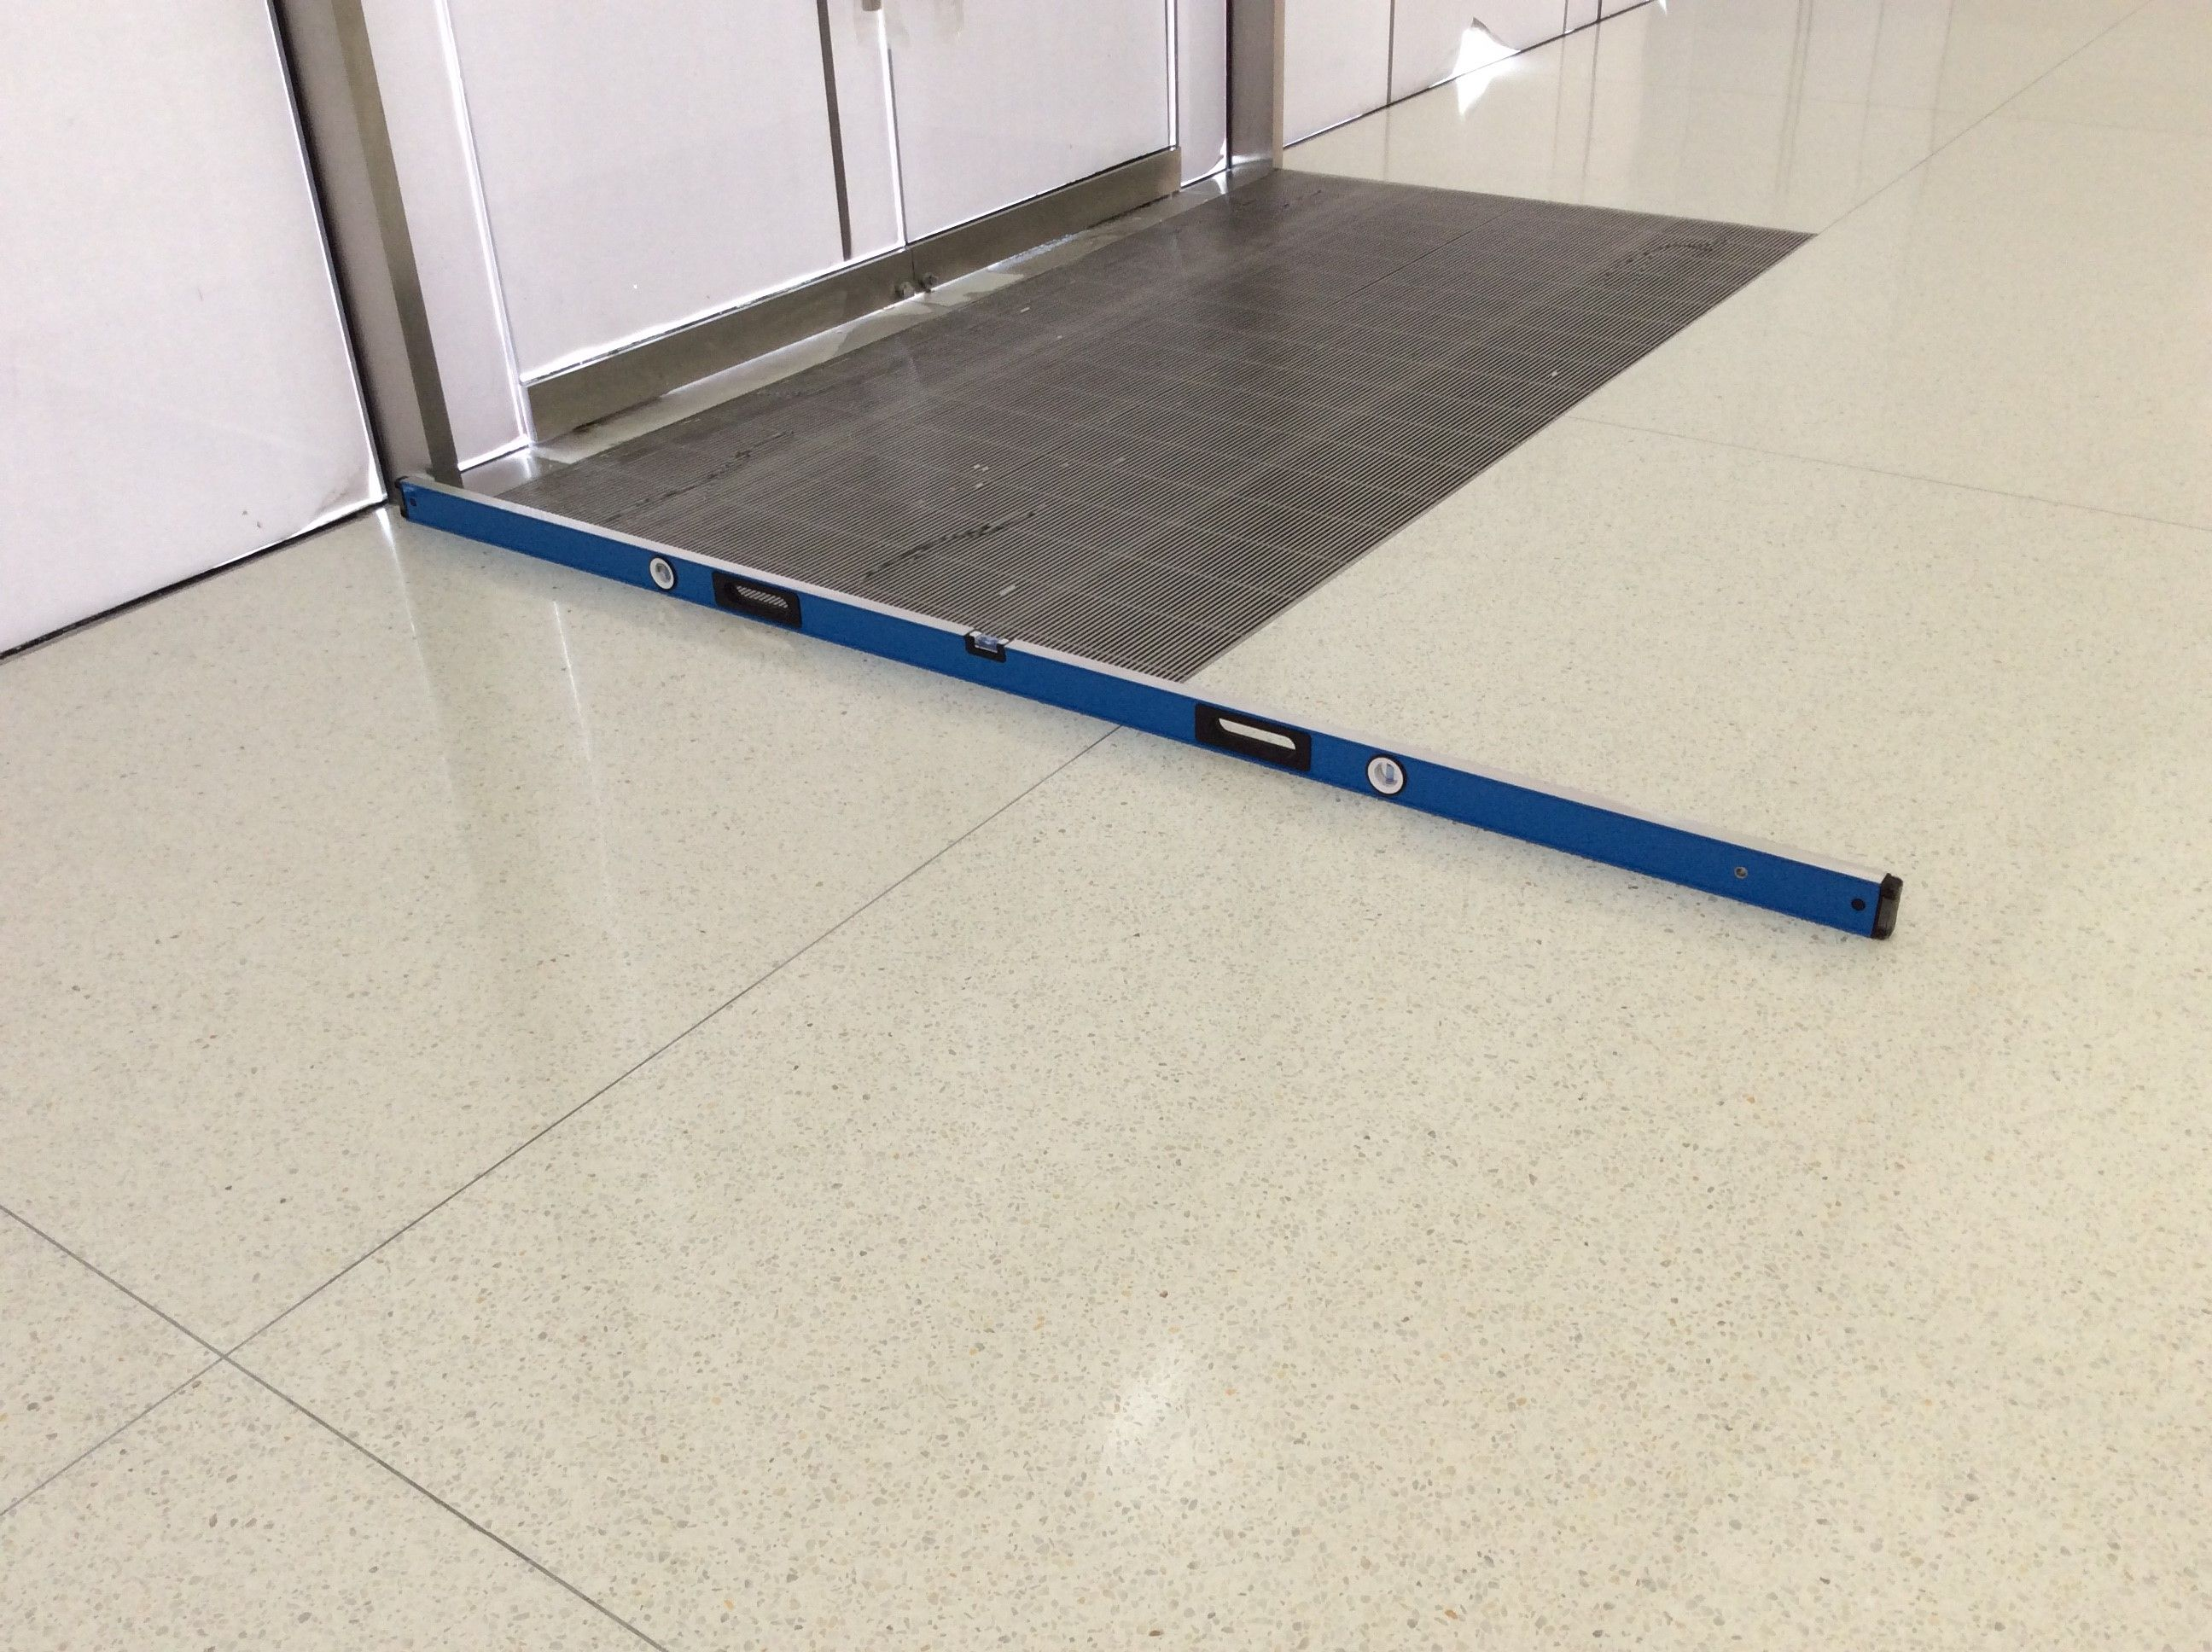 Doyle dickerson terrazzo recently installed epoxy terrazzo at an doyle dickerson terrazzo recently installed epoxy terrazzo at an apple store location for the design dailygadgetfo Images